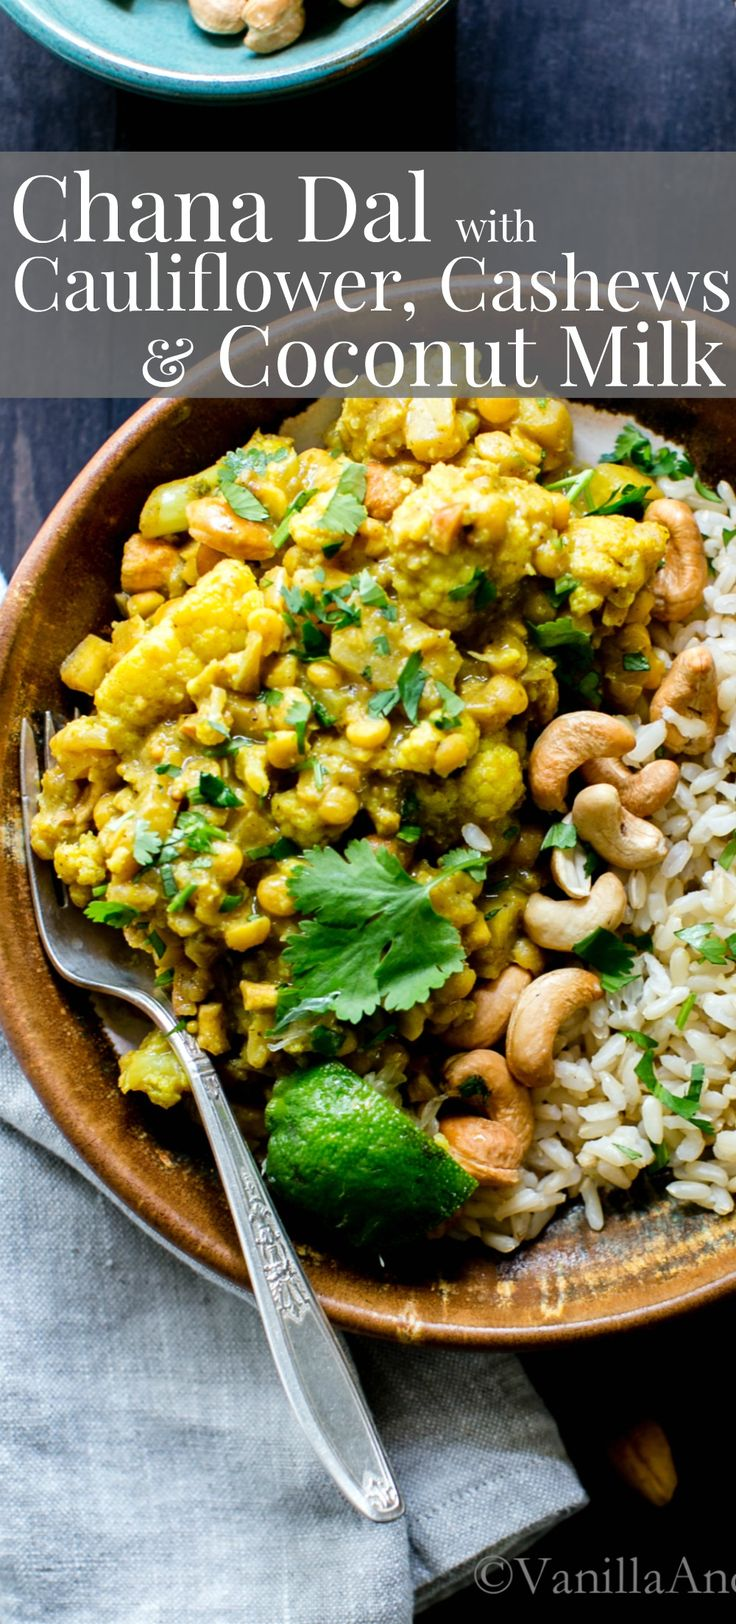 Chana Dal with Cauliflower, Cashews and Coconut Milk comes together in 50 minutes and feeds a small crowd. Excellent for dinner or leftovers for lunch. Vegan | Vegetarian | Thai | Gluten Free | Recipes | Healthy